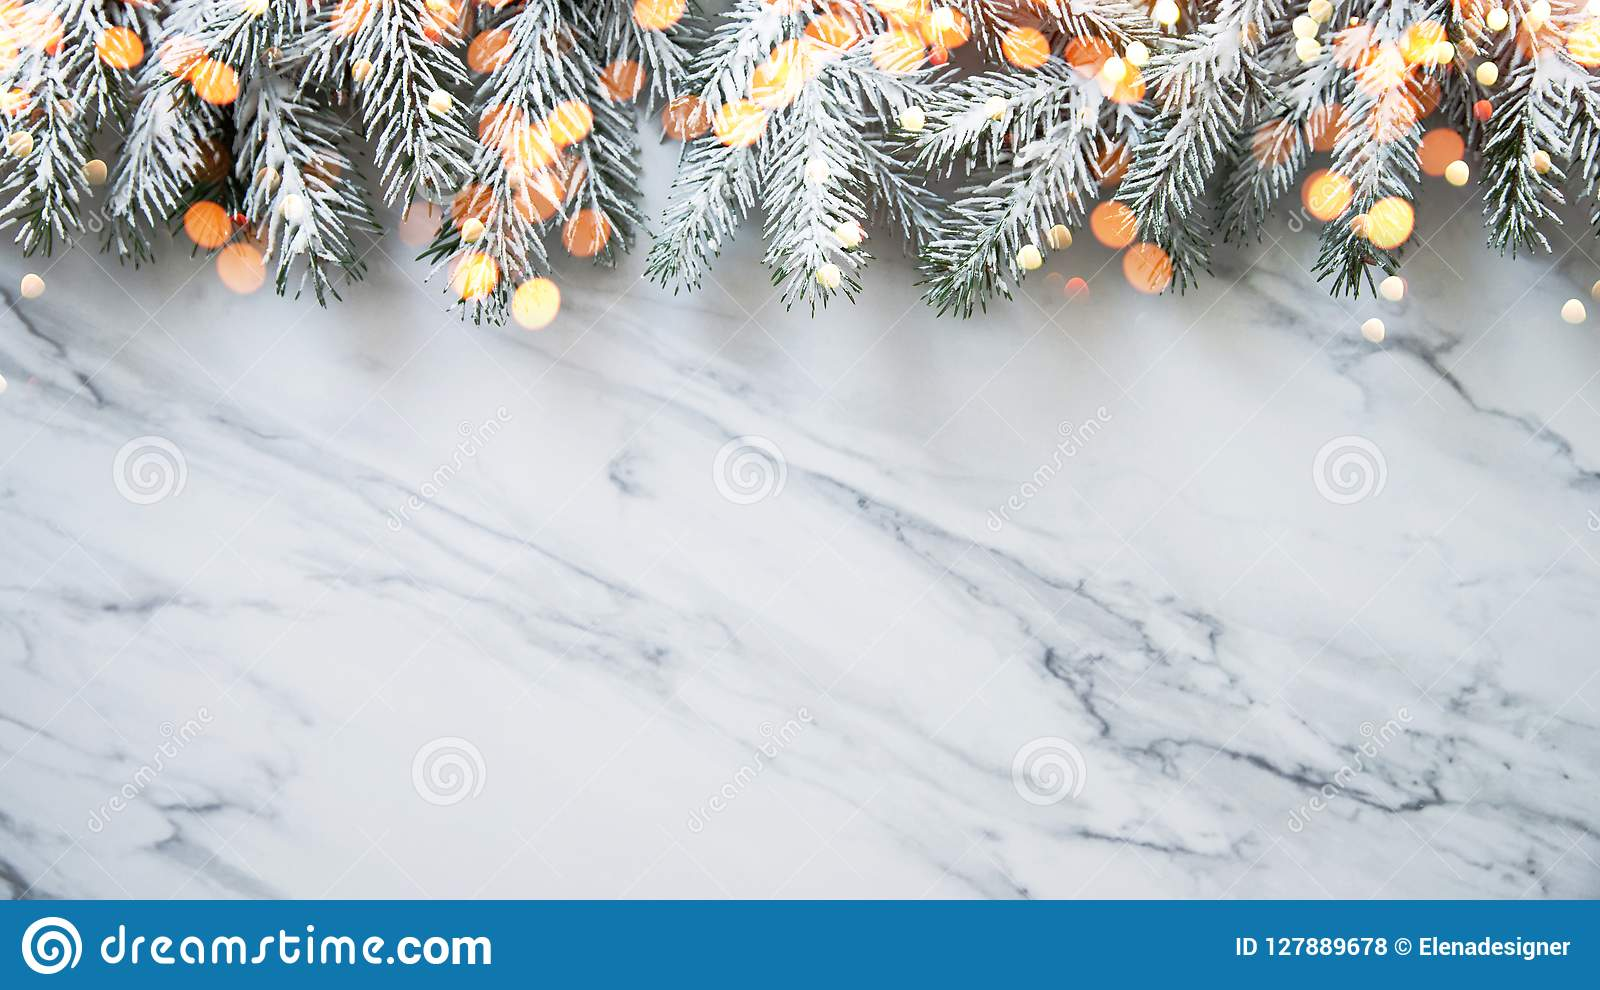 Holiday Christmas Background.Christmas Background With Xmas Tree On White Marble